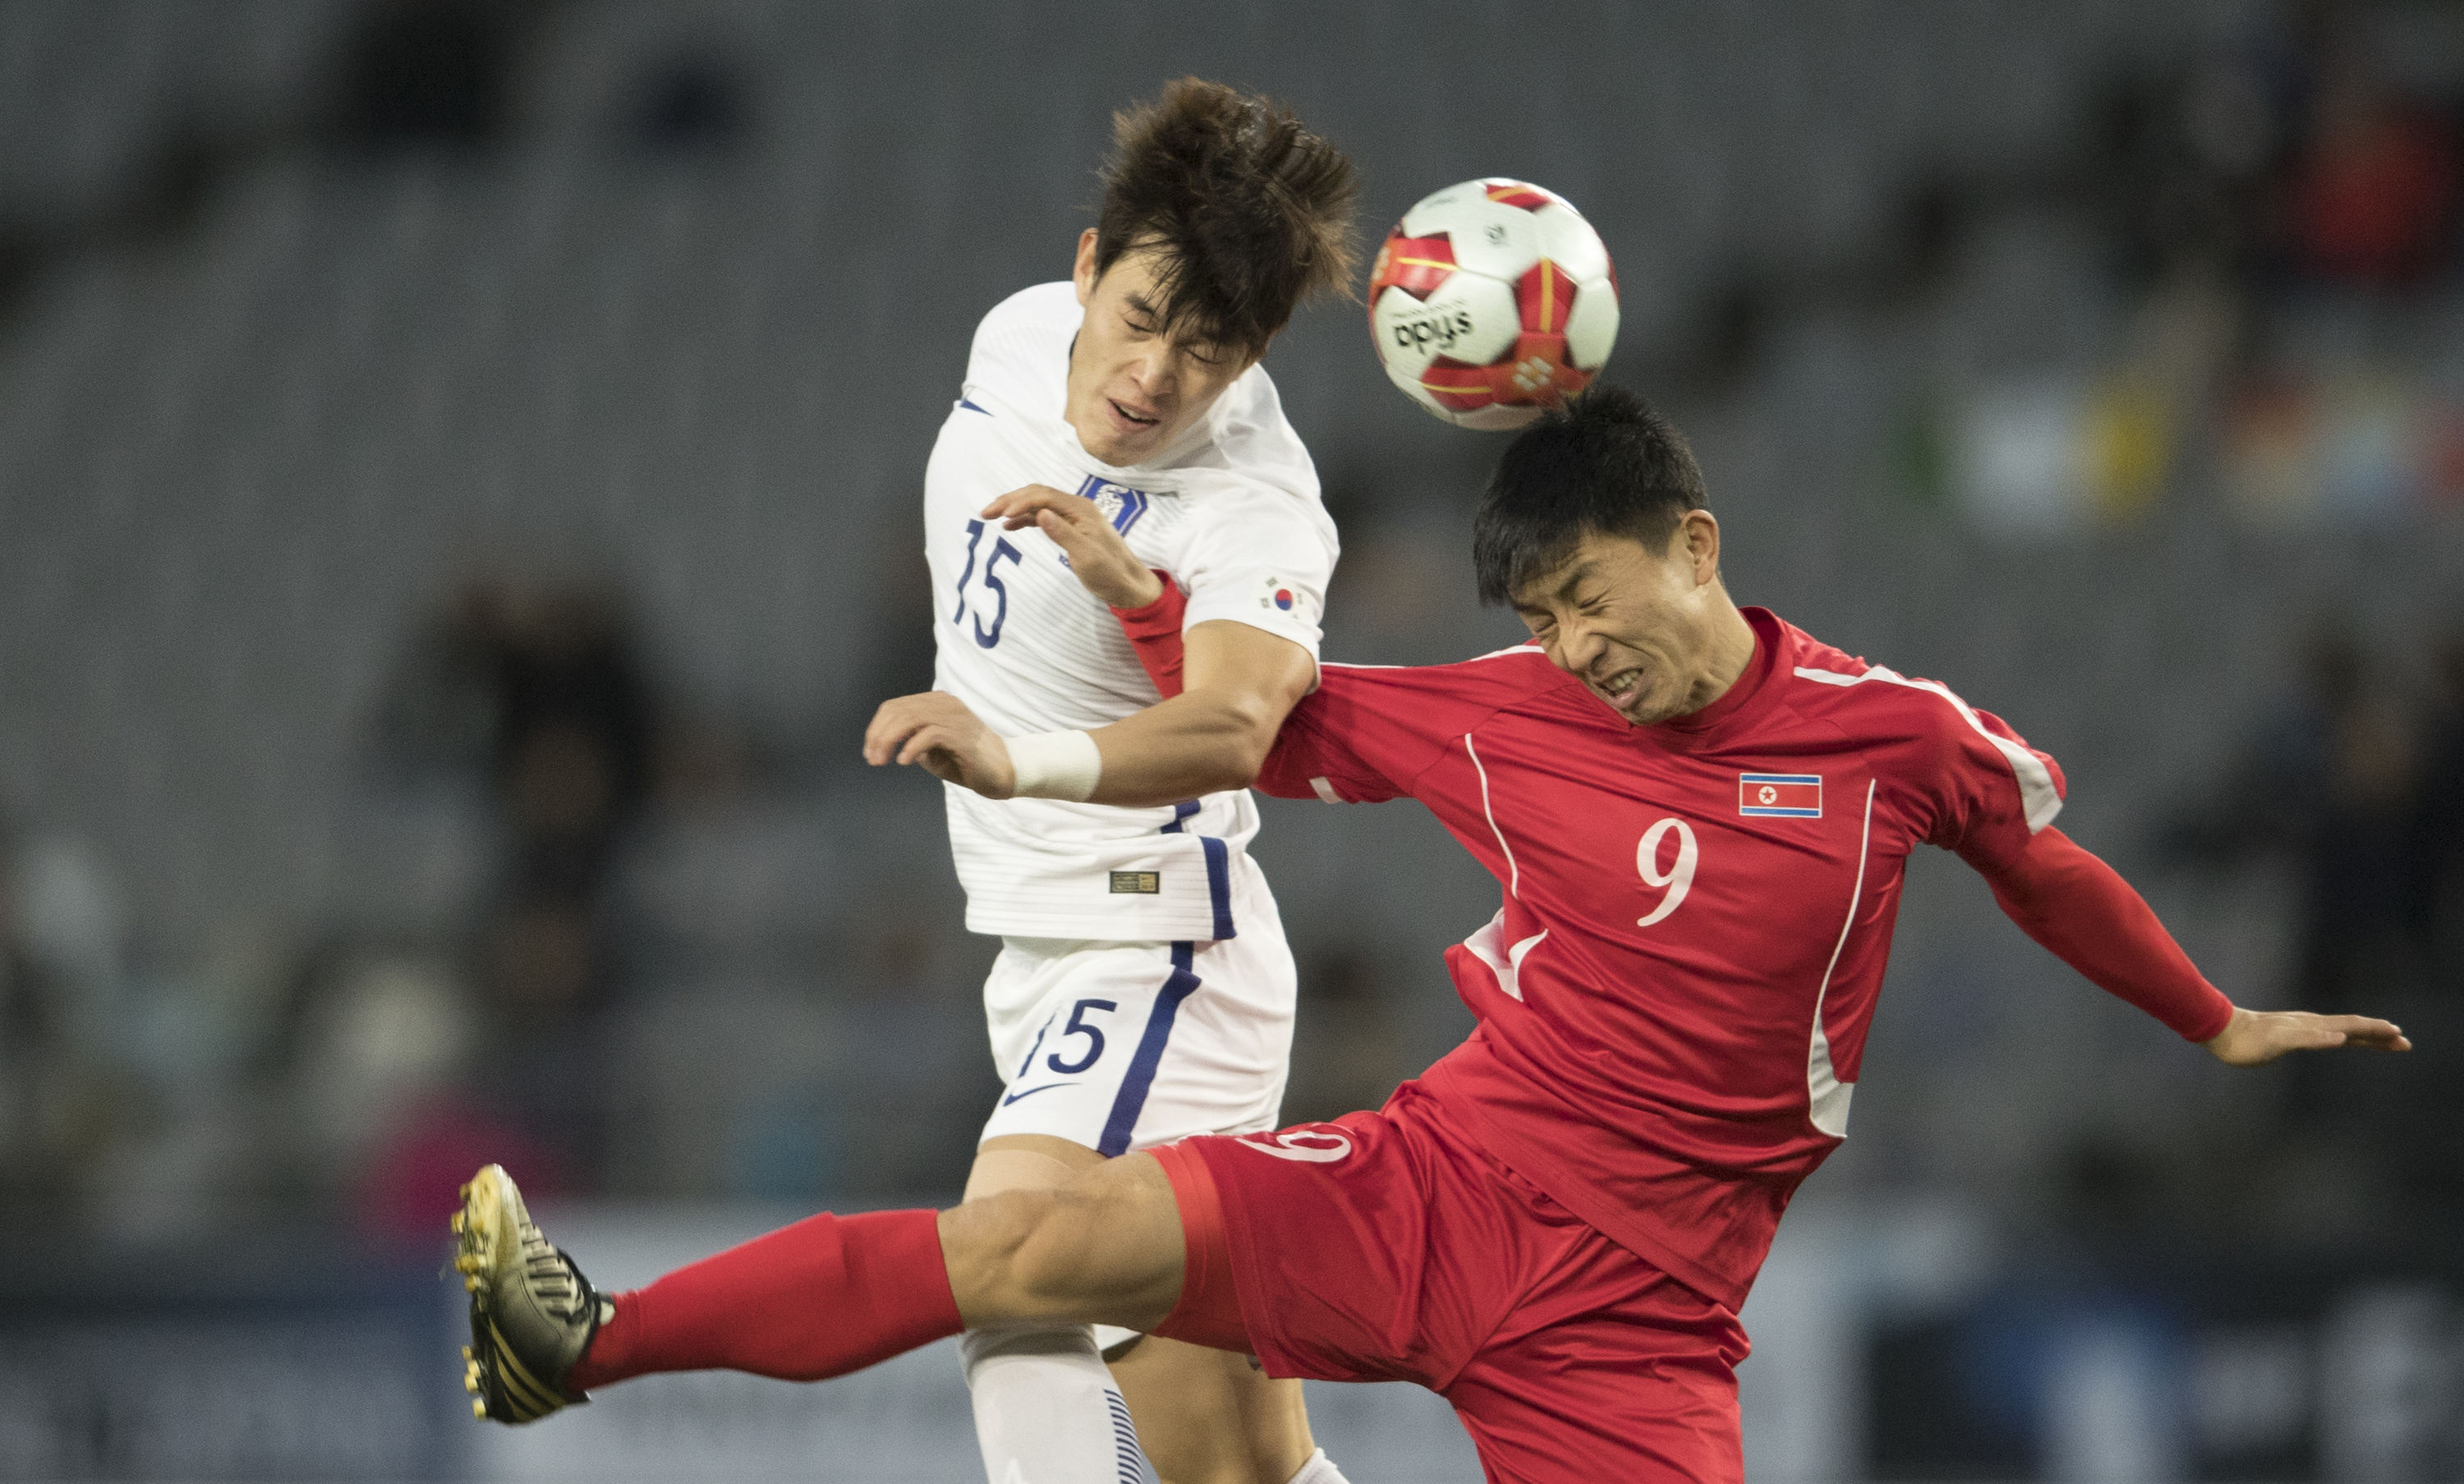 Pak Song Chol (#9) of North Korea and Lee changmin (#15) of South Korea in action during the EAFF E-1 Men's Football Championship at the Ajinomoto Stadium on December 12, 2017 in Chofu, Tokyo, Japan.